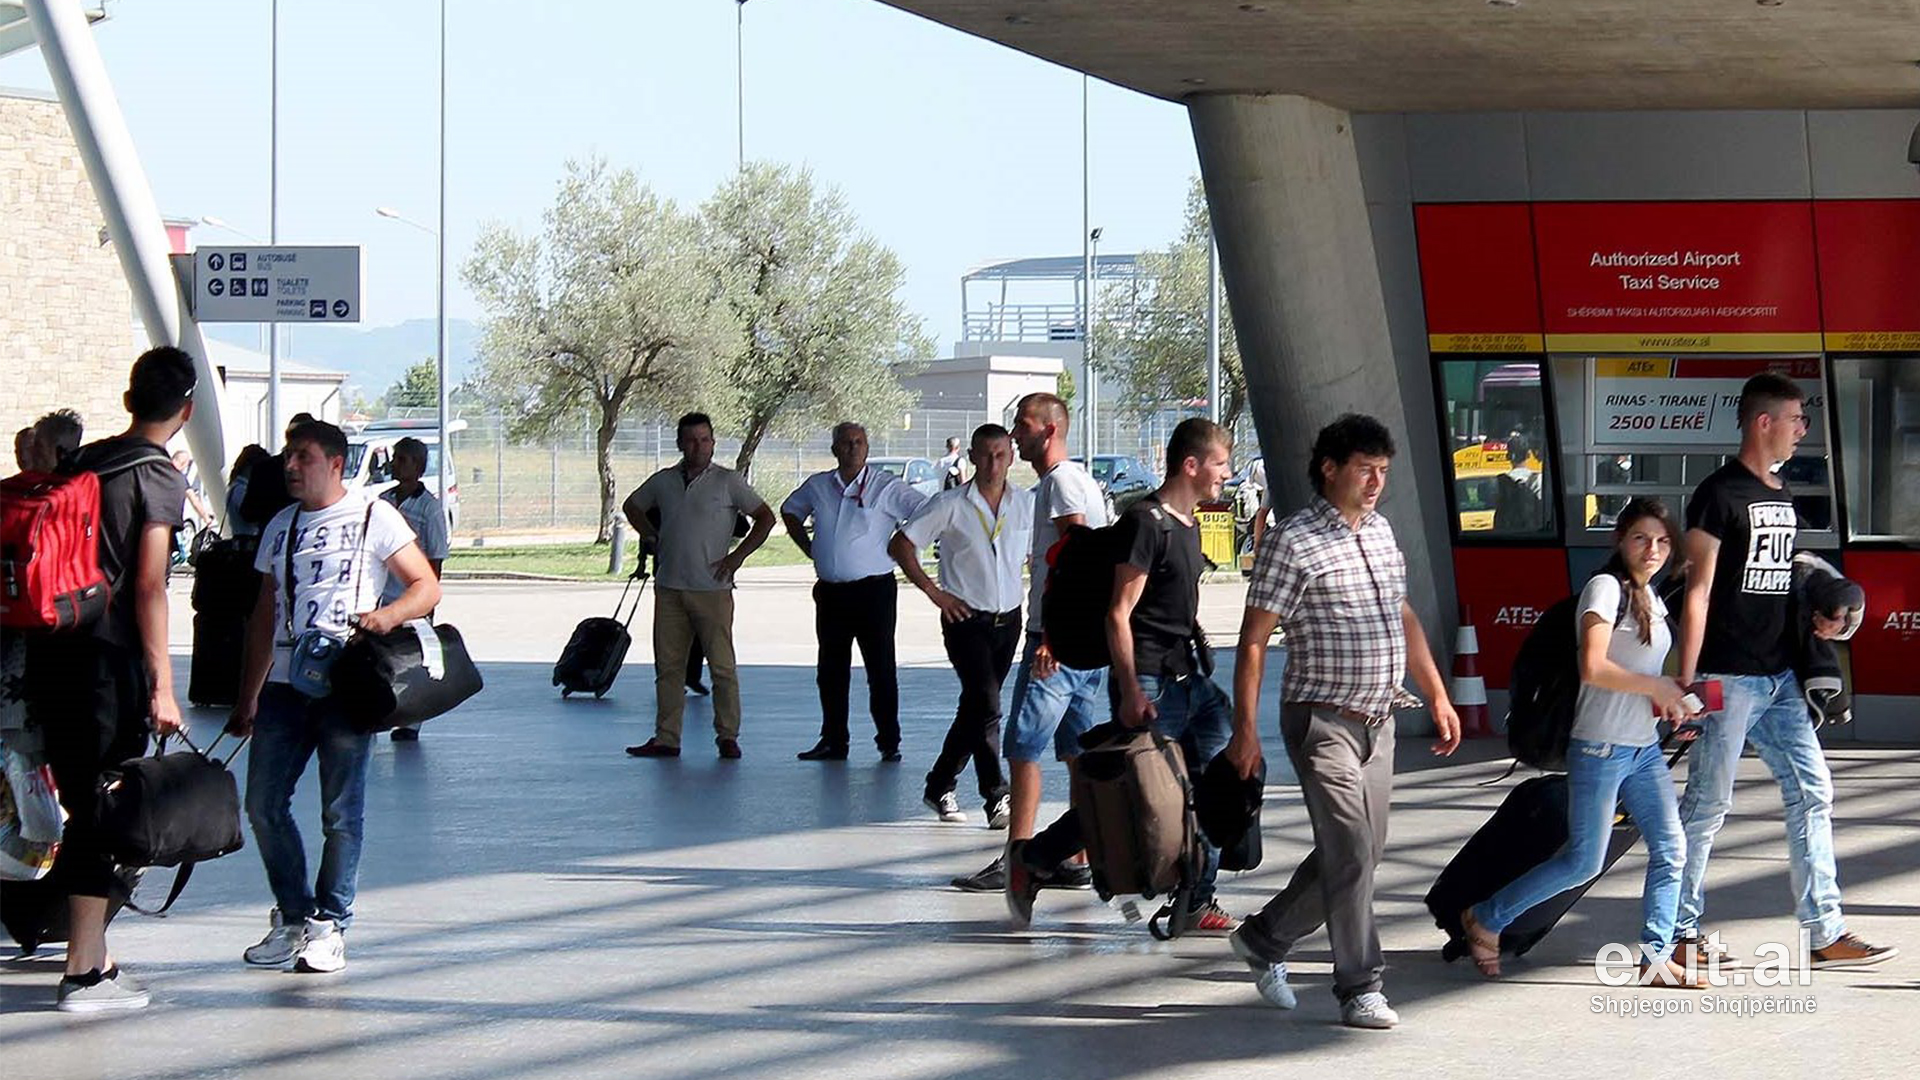 Germany Repatriates 19 Albanians Who Overstayed or Sought Asylum in the Schengen Area